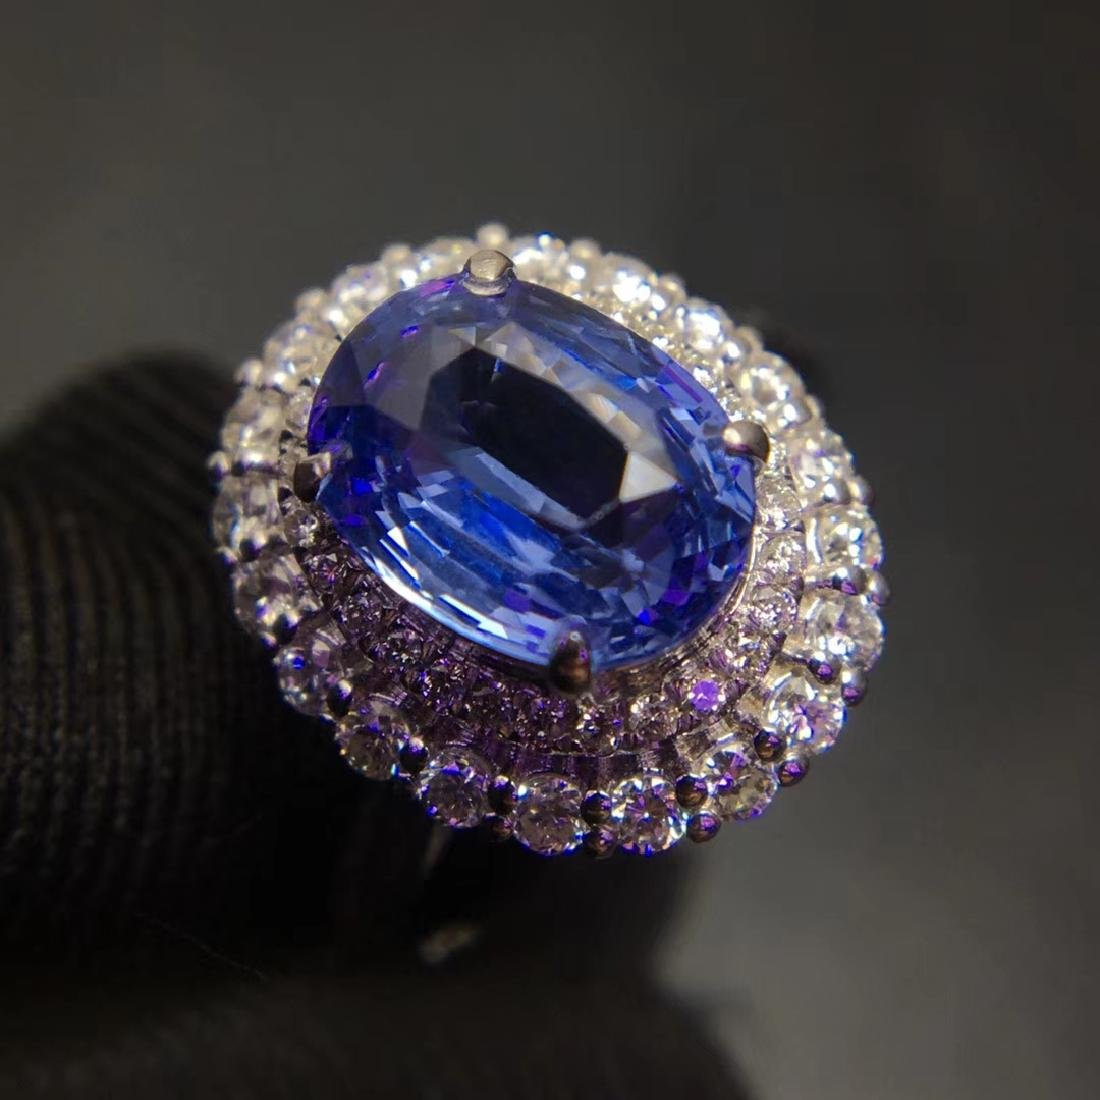 2.59ct Sapphire Ring in 18kt White Gold - 2